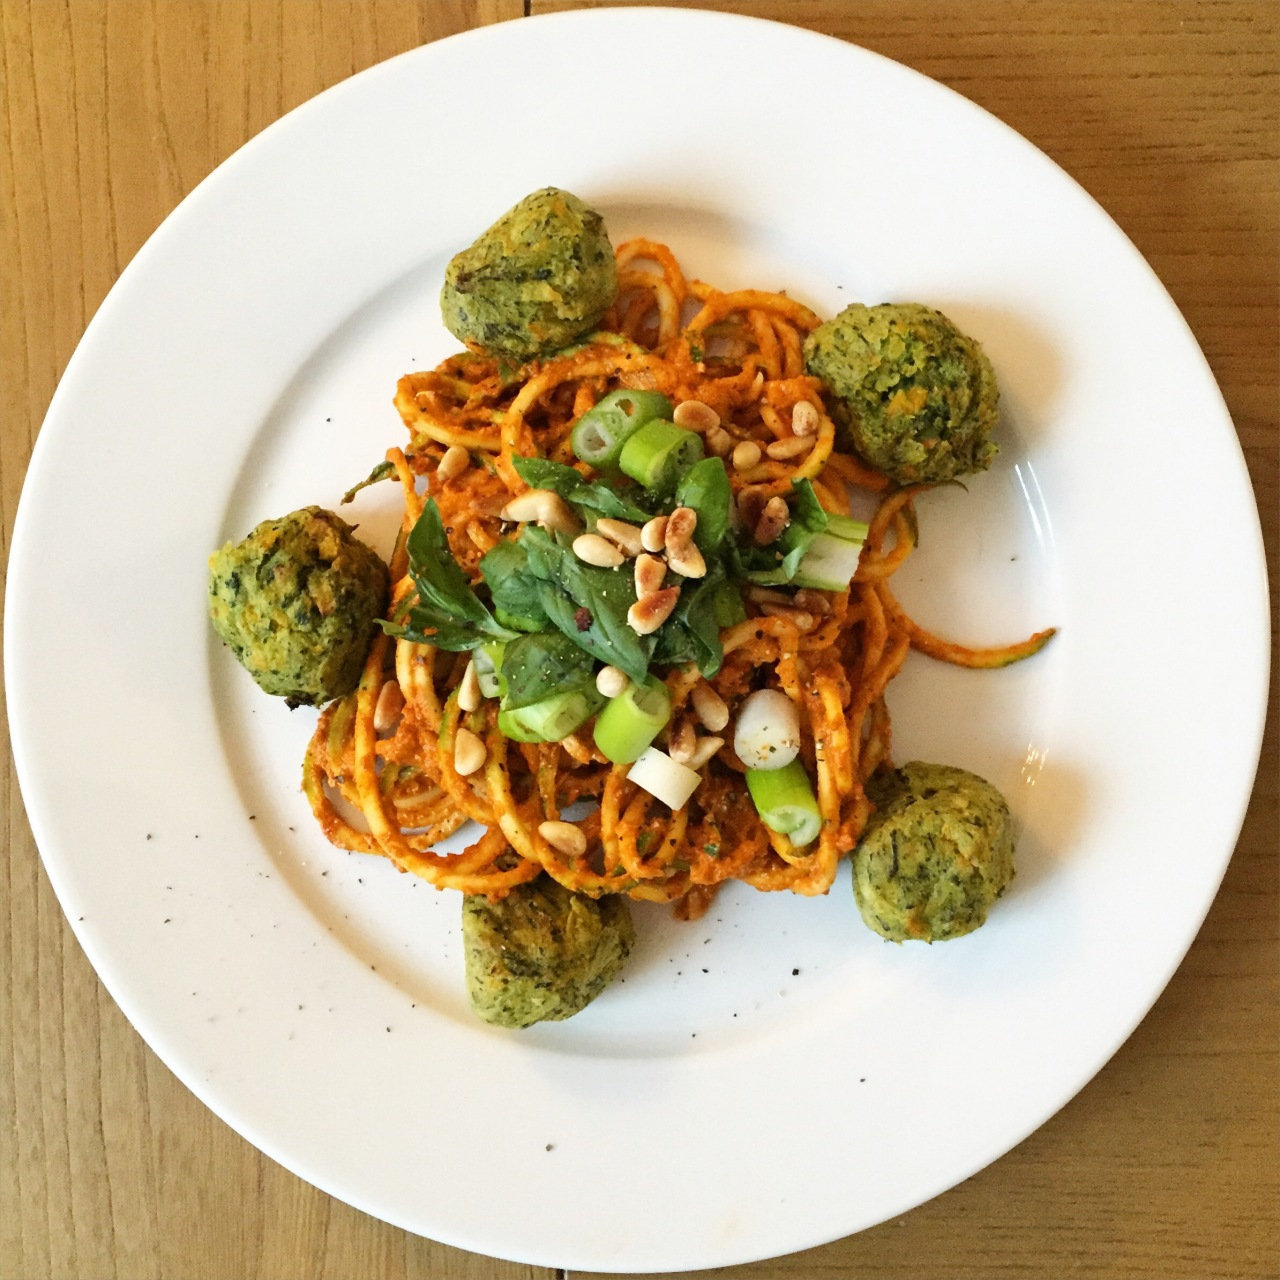 Courgetti and (meat-free) balls